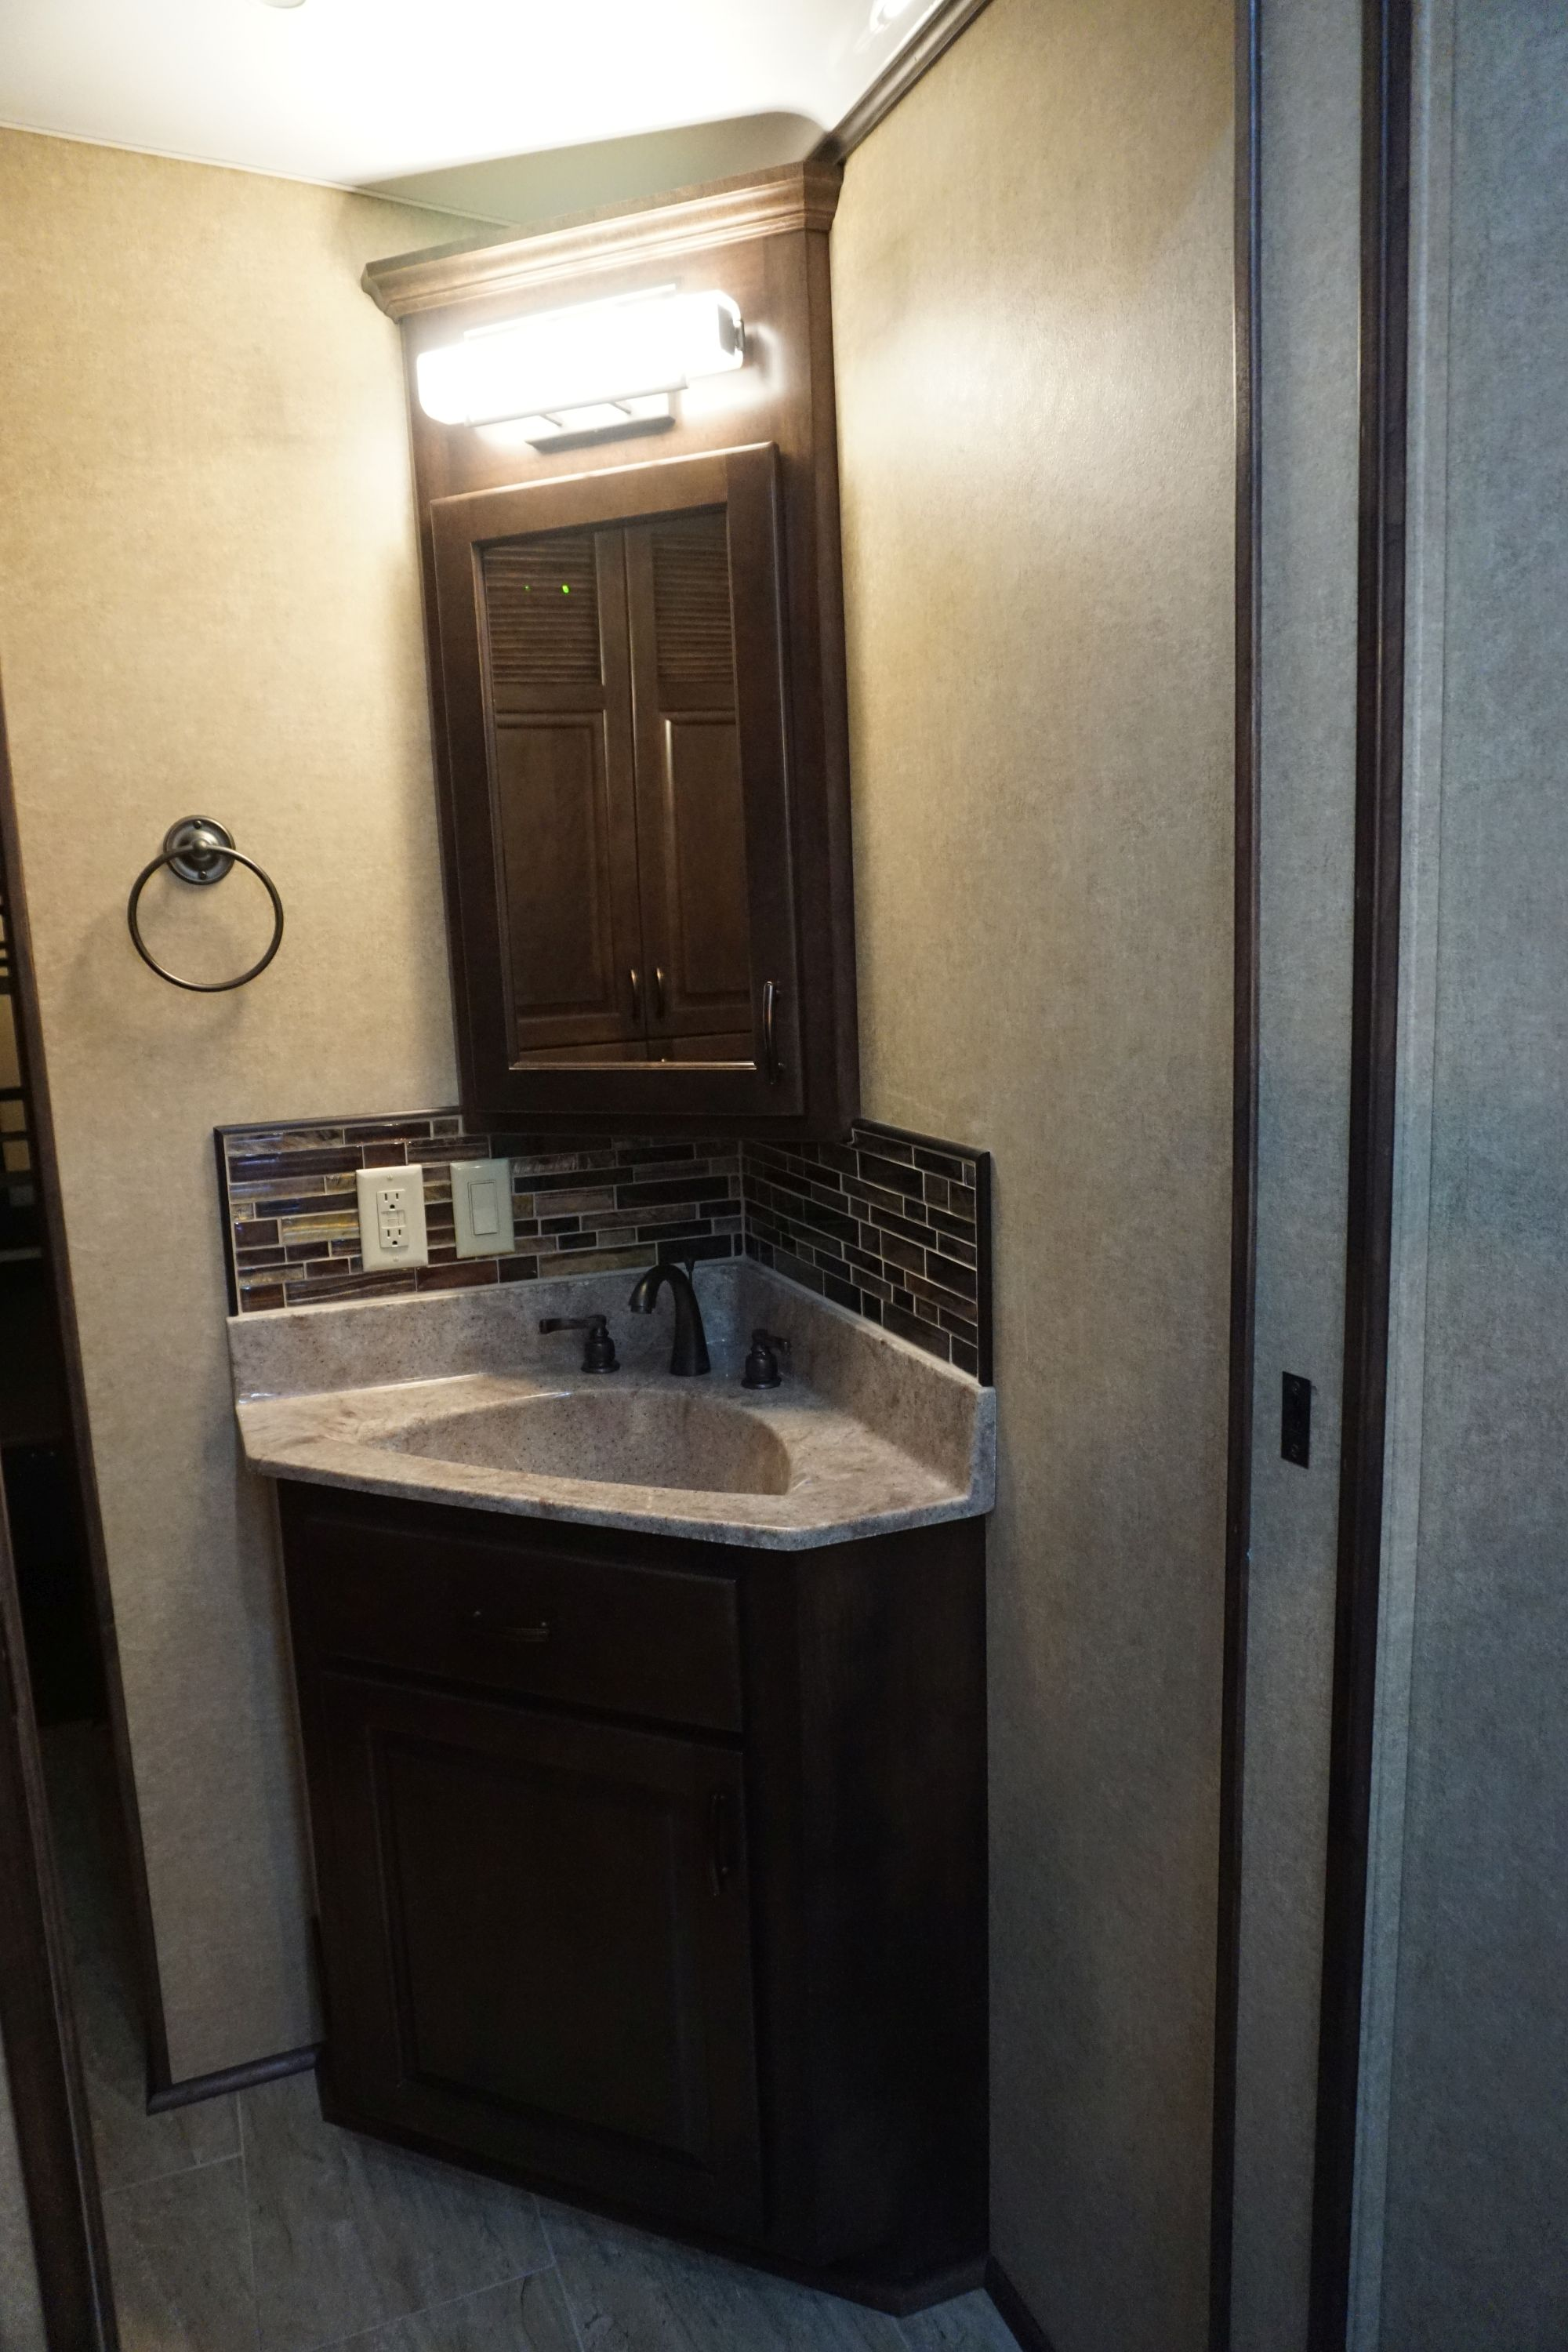 Walk-through Bathroom Vanity & Medicine Cabinet